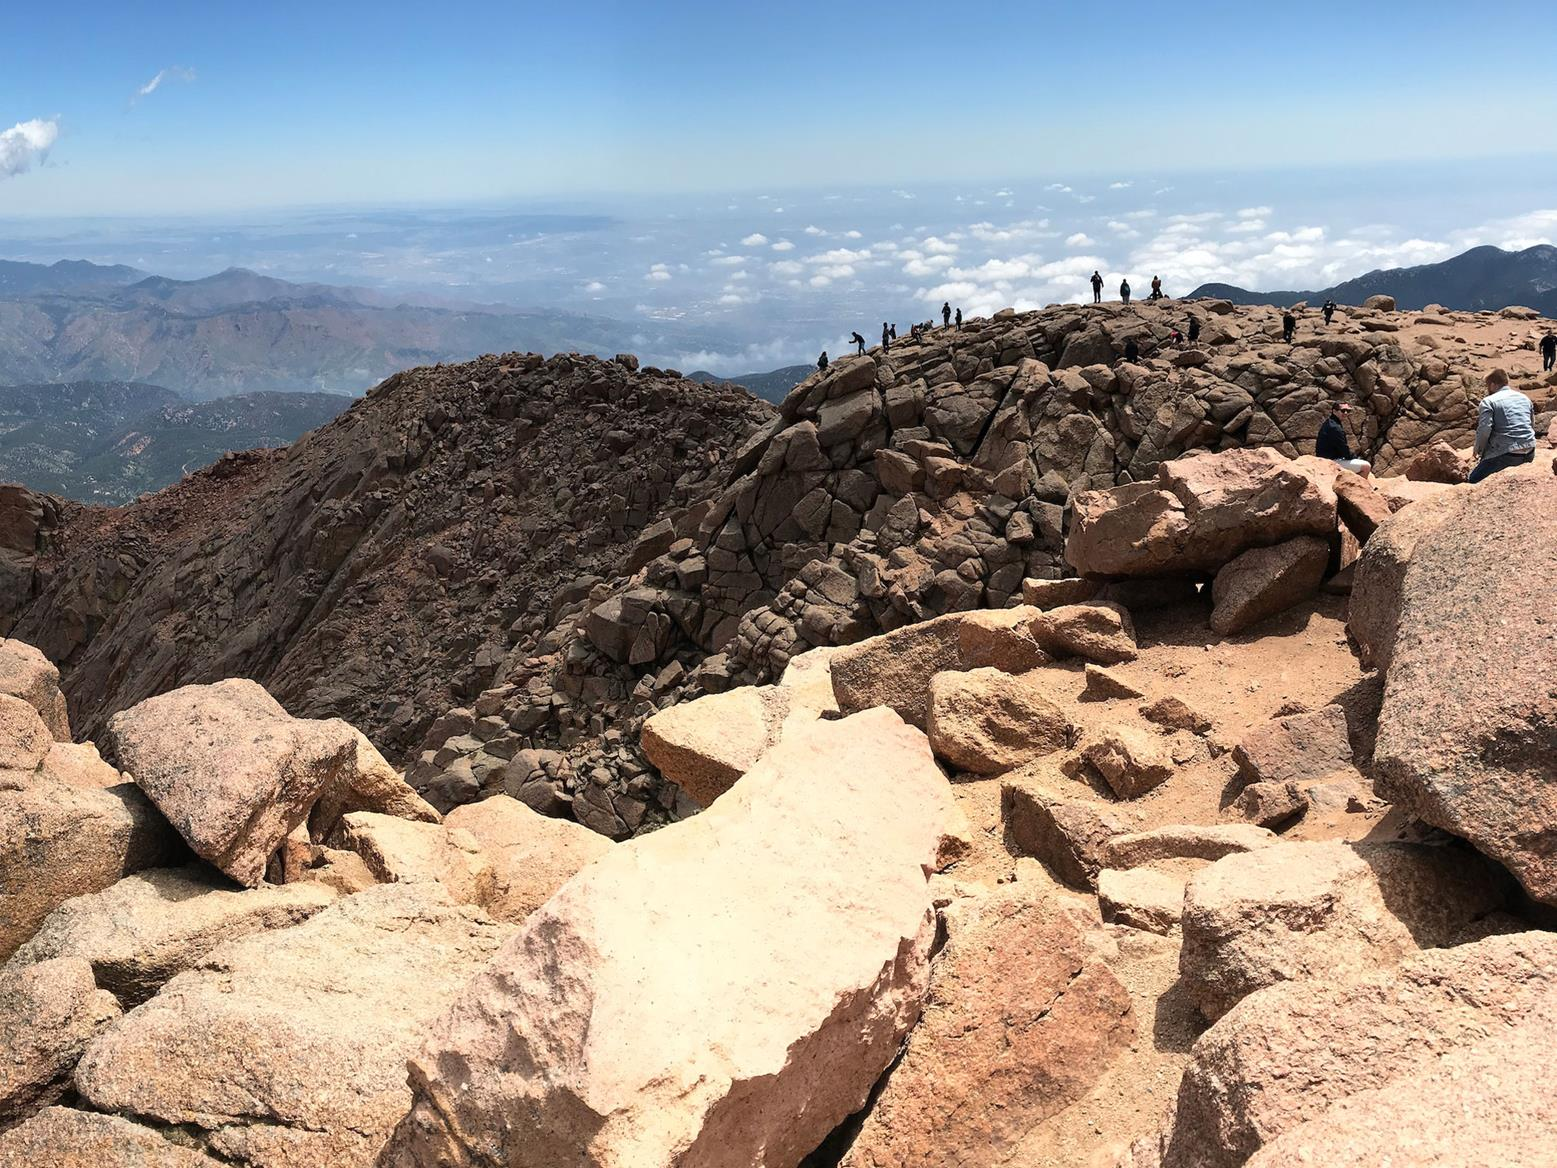 The spectacular view from Pikes Peak